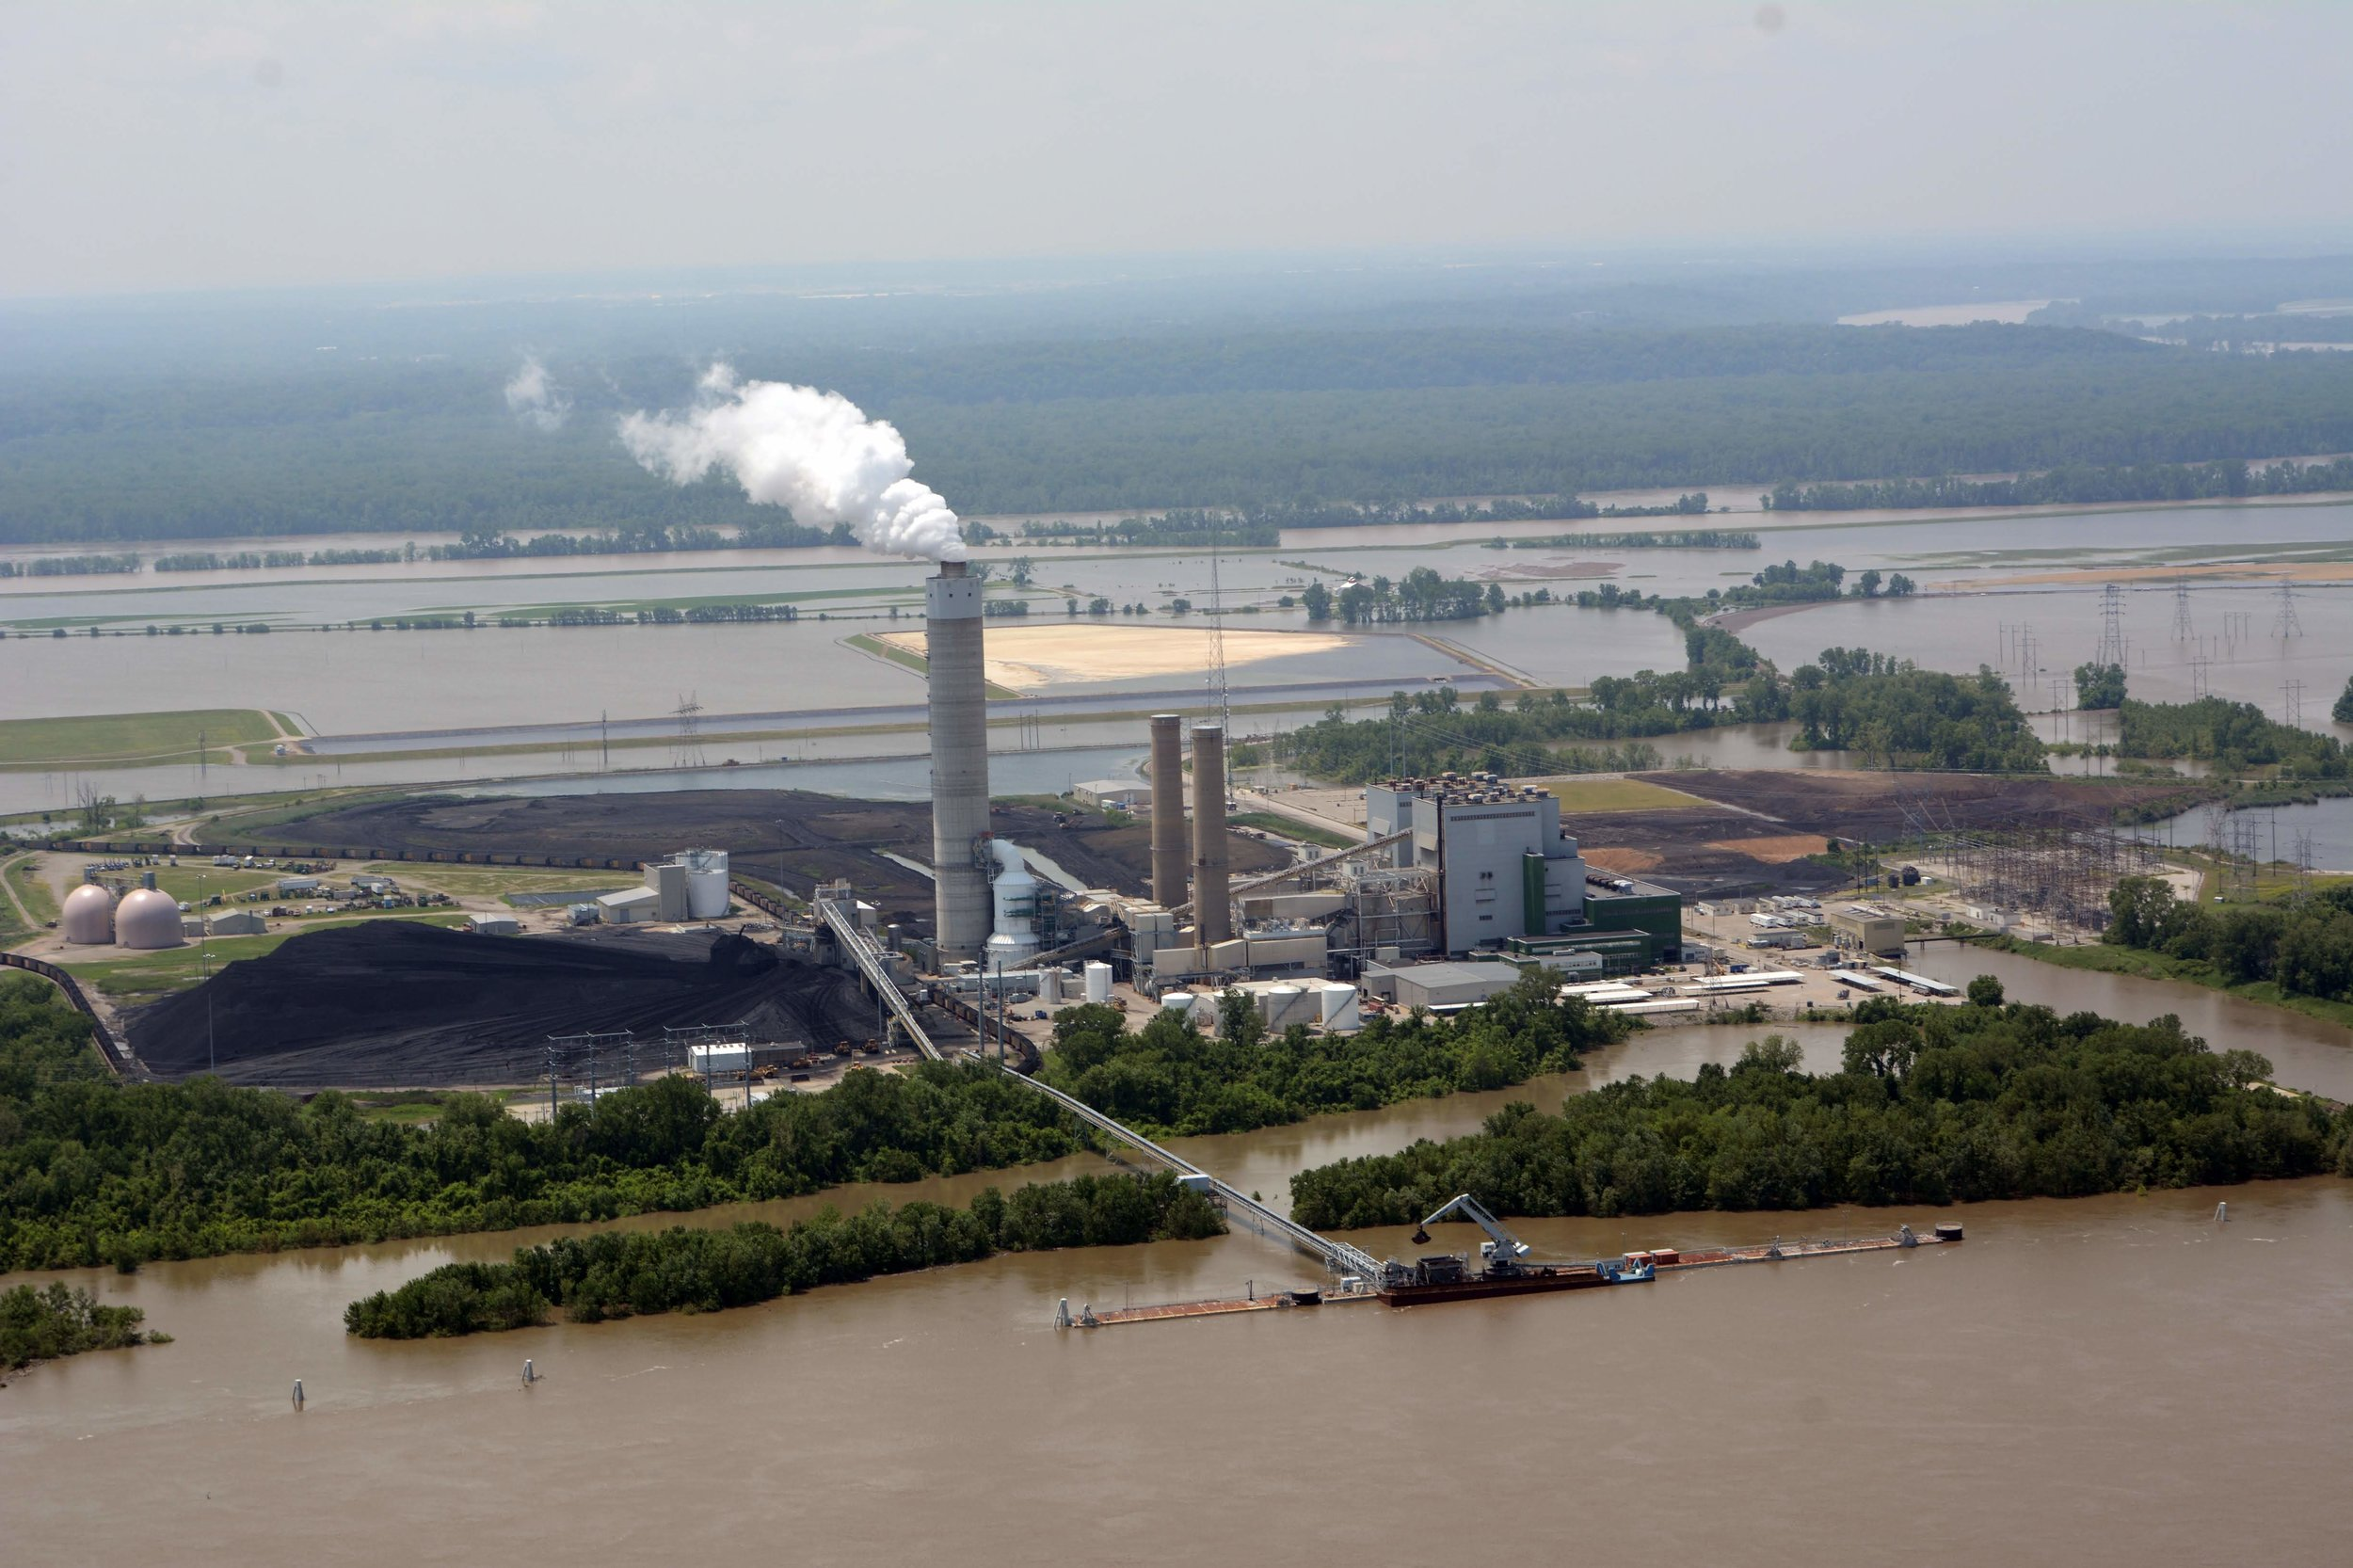 Ameren's Sioux Power Station at the confluence between the Mississippi and Missouri Rivers | Photo taken on June 2, 2019 by Tom Peterson